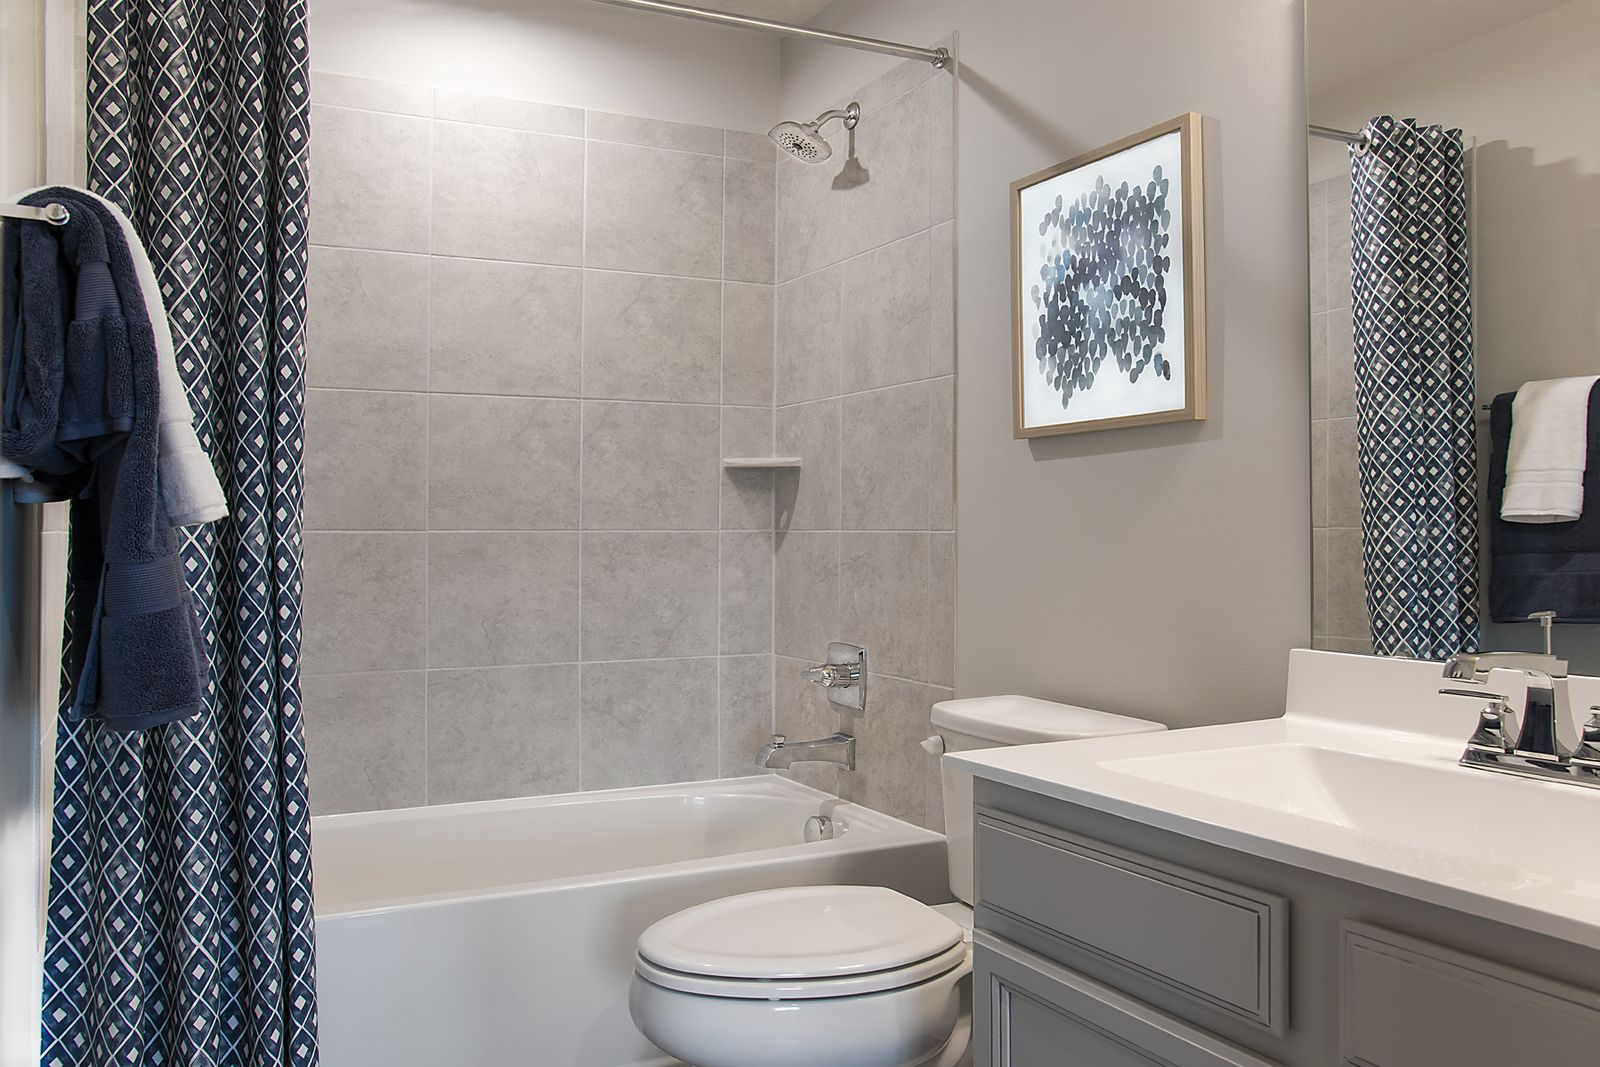 Bathroom featured in the Odessa By Ryan Homes in Richmond-Petersburg, VA